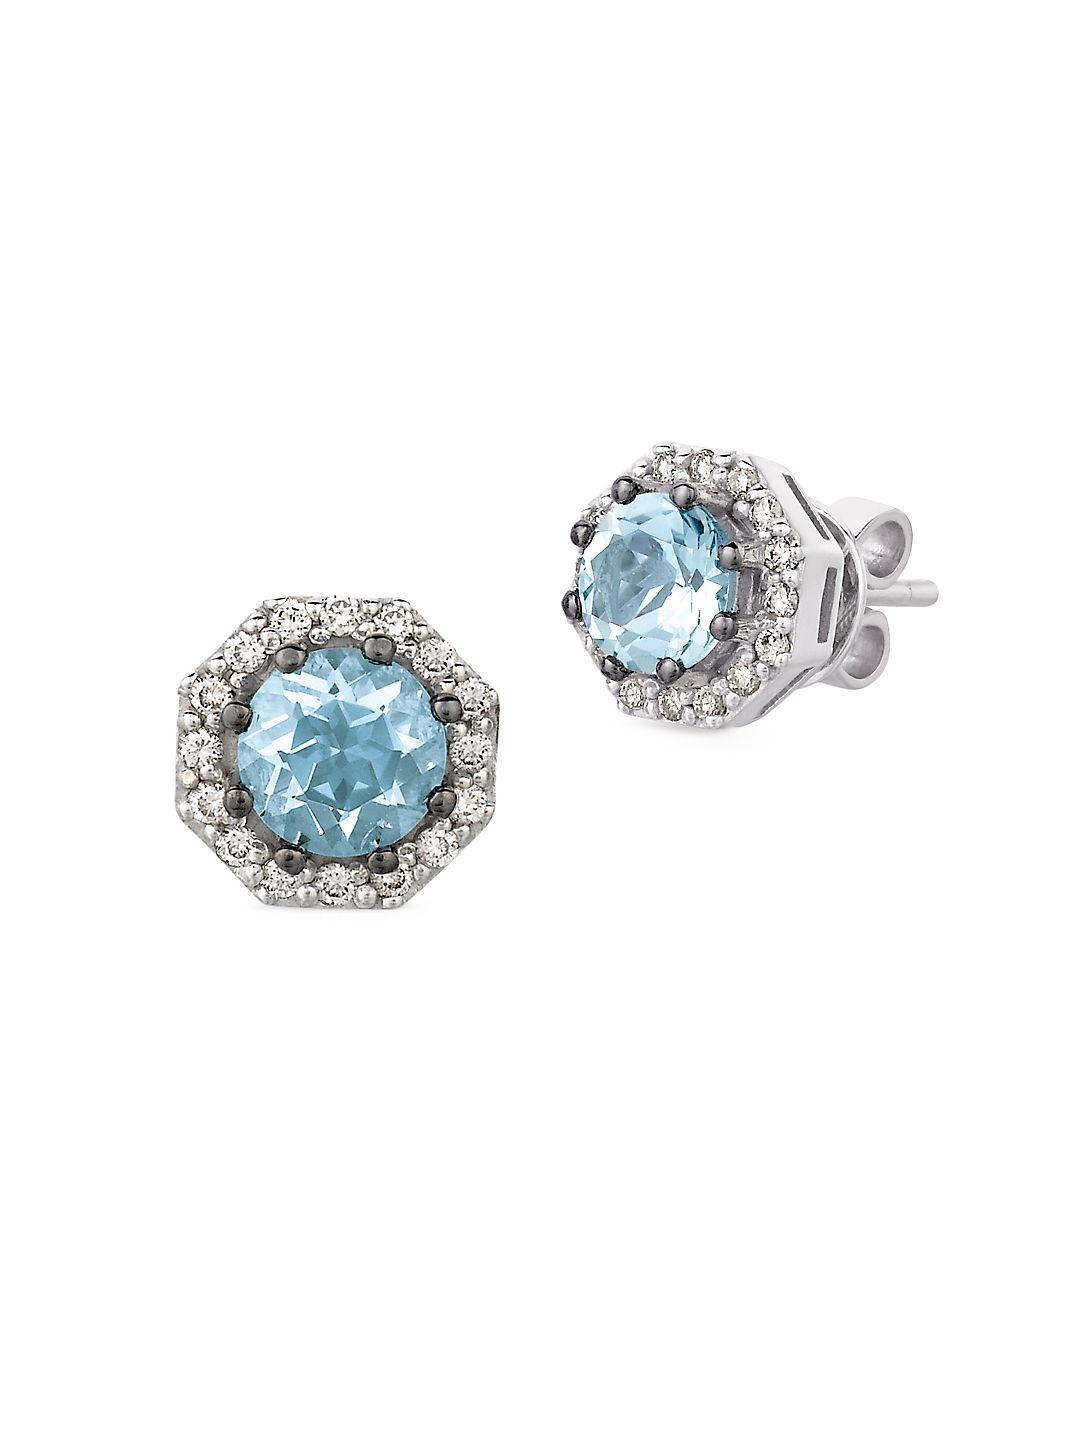 aqua marine stud and yoogi tiffany aquamarine closet jewelry co diamond s earrings oval